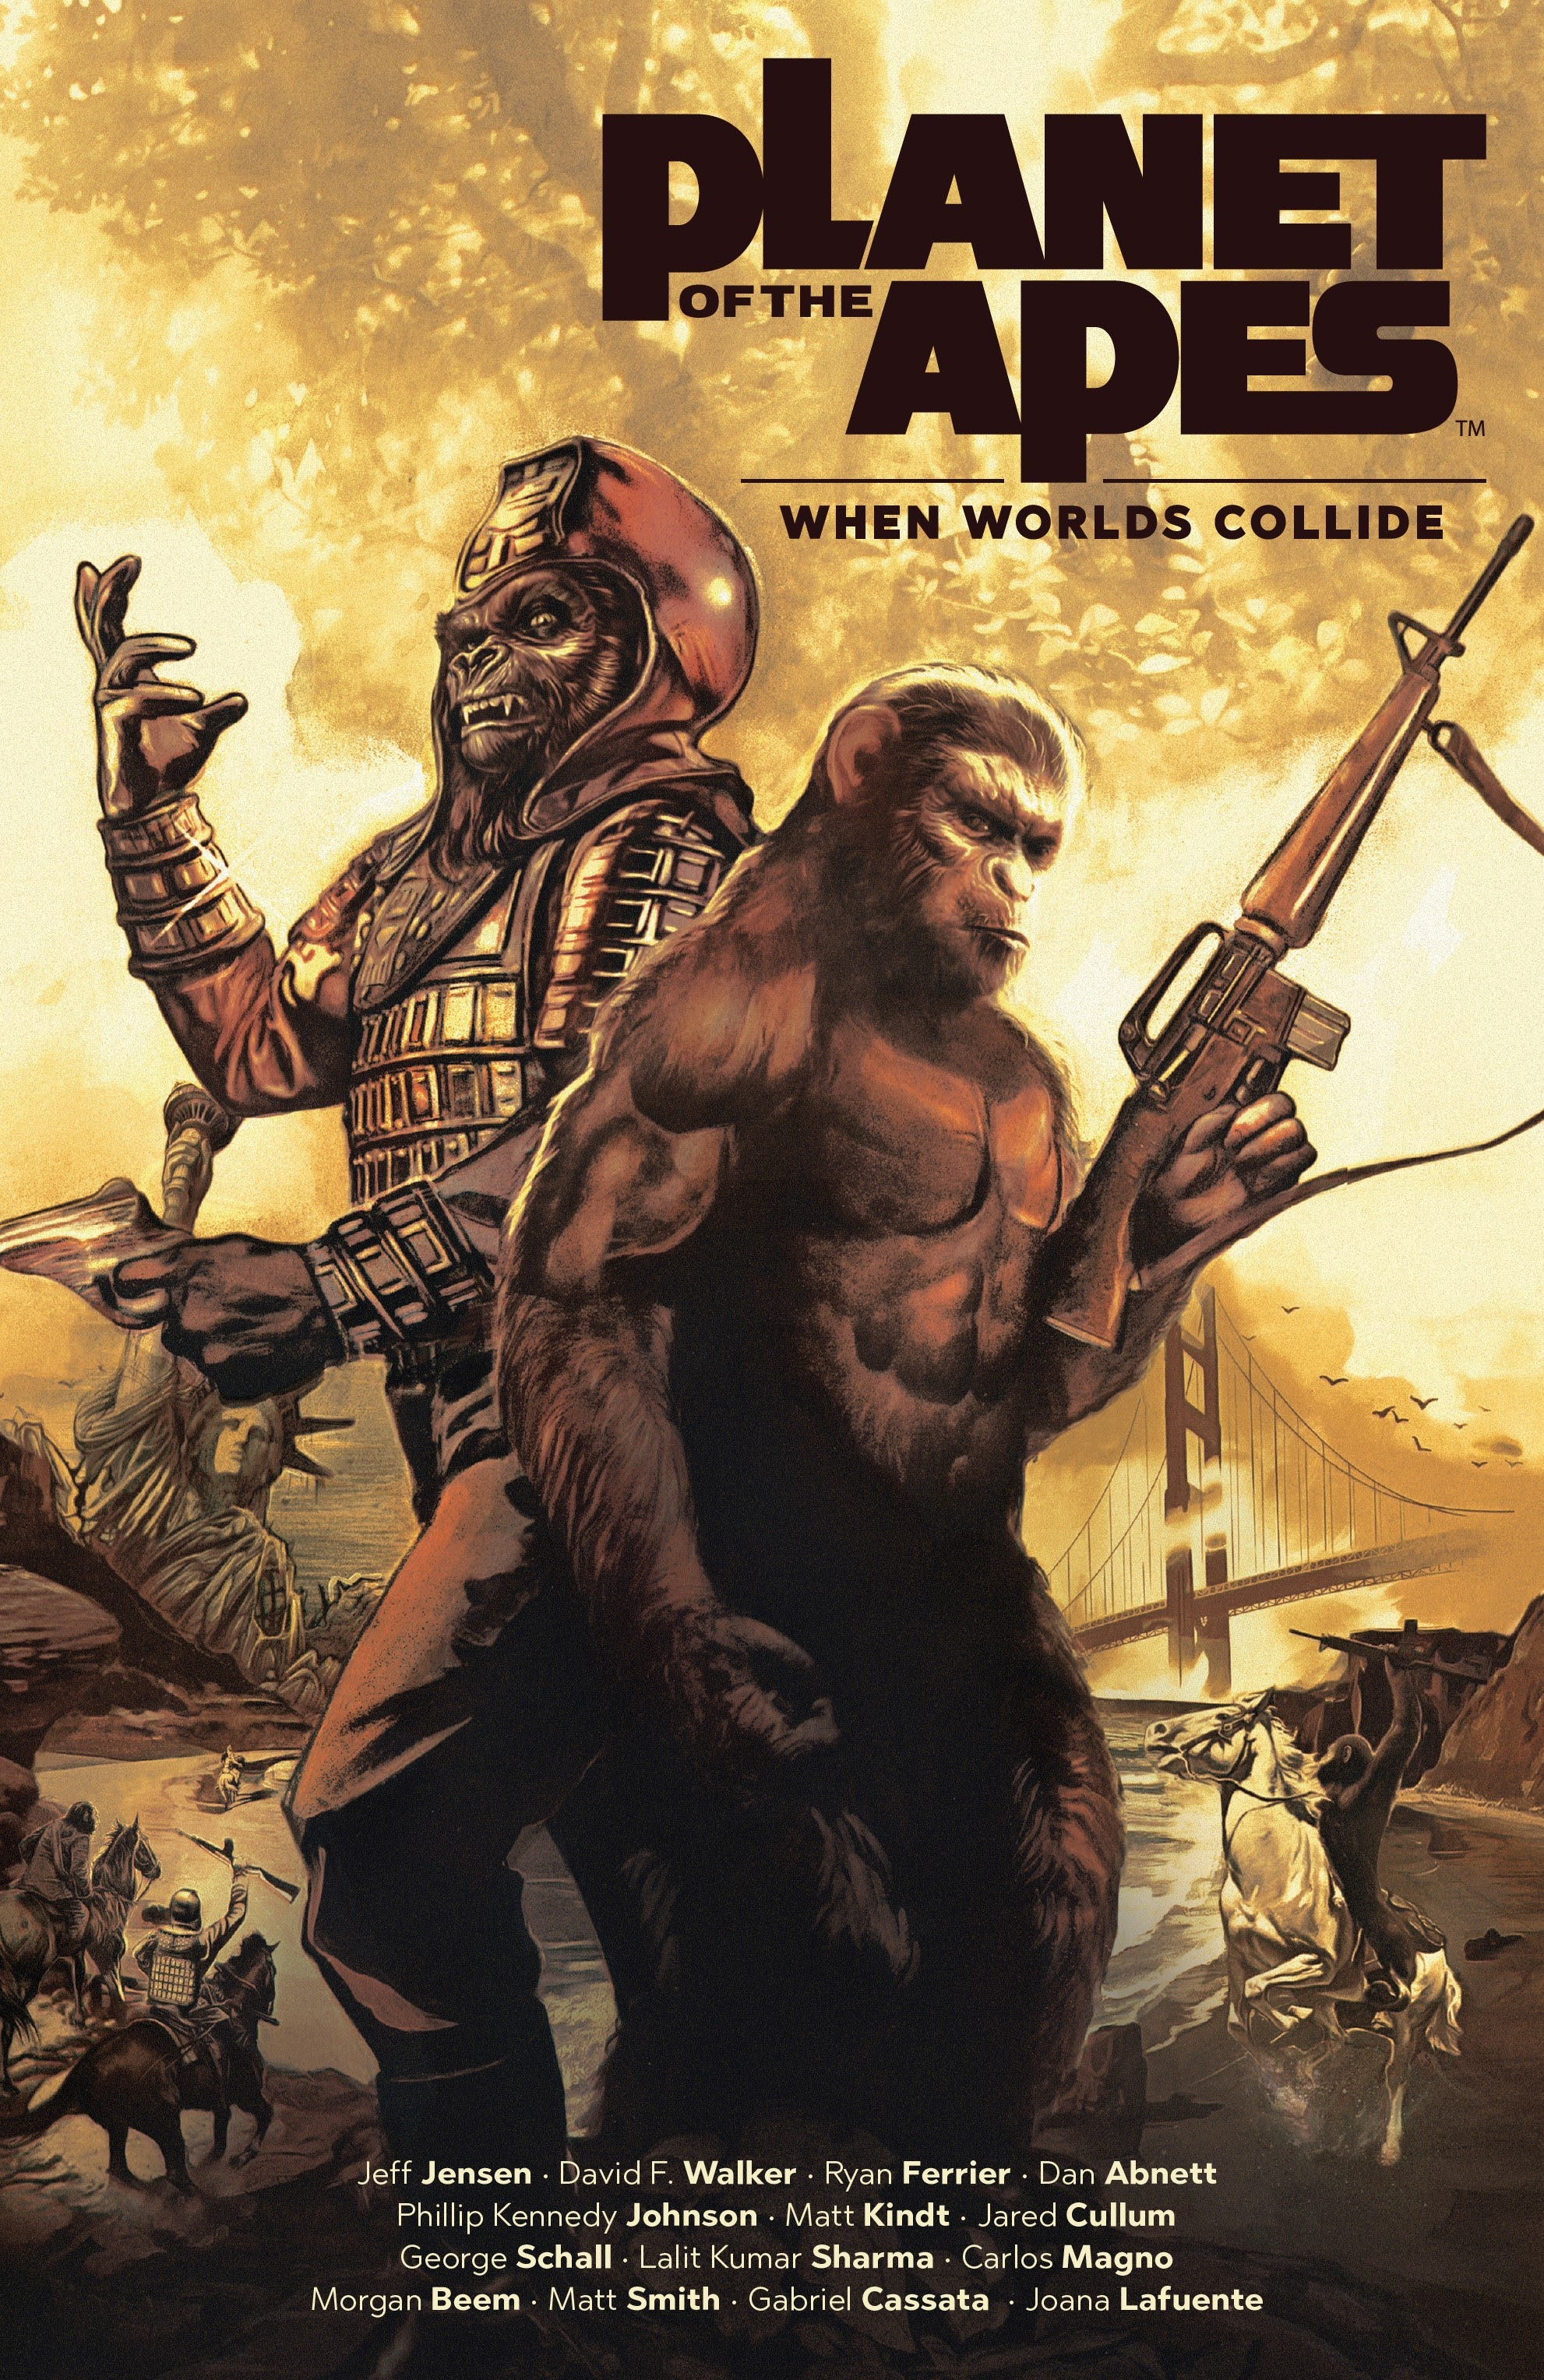 Planet of the Apes: When Worlds Collide TPB Page 1